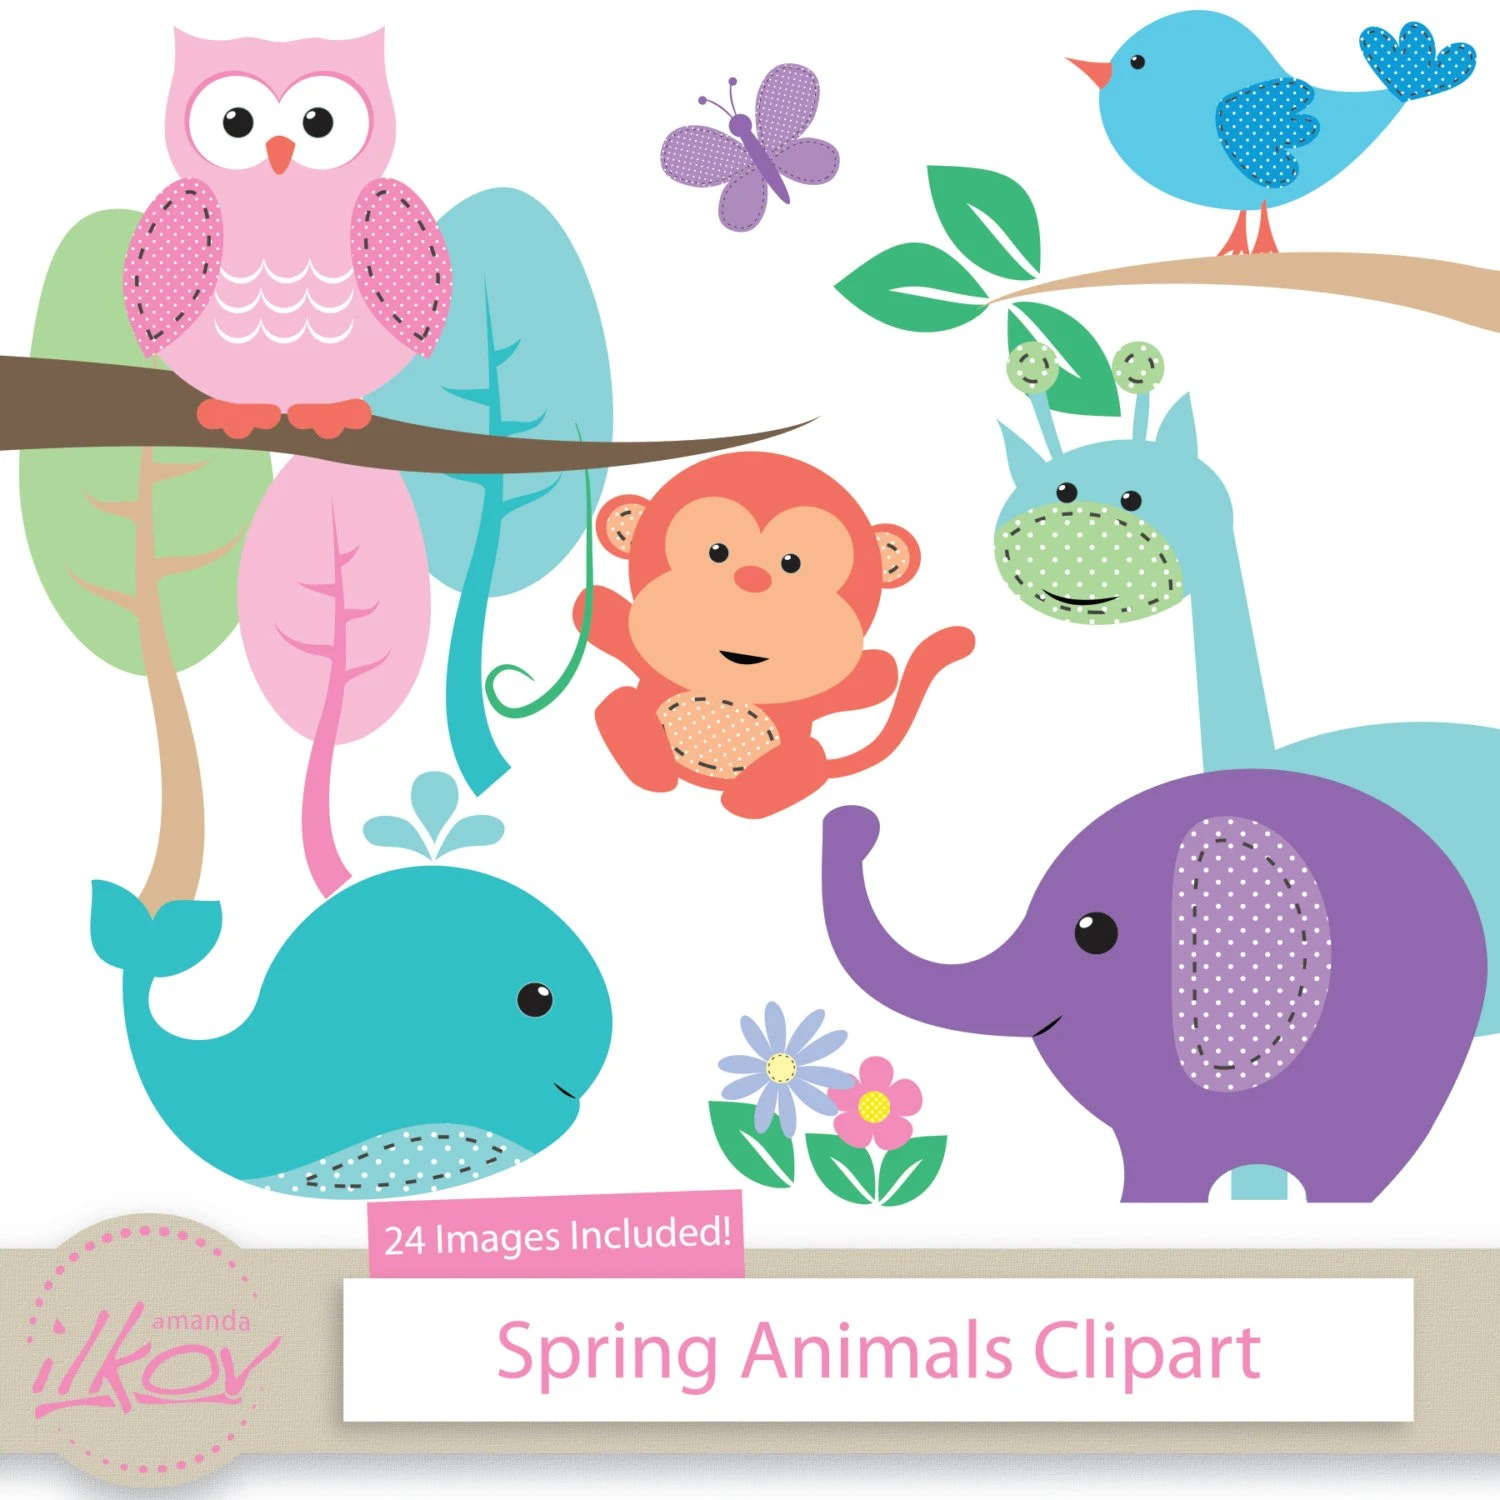 Spring Baby Animals Clipart For Digital Scrapbooking